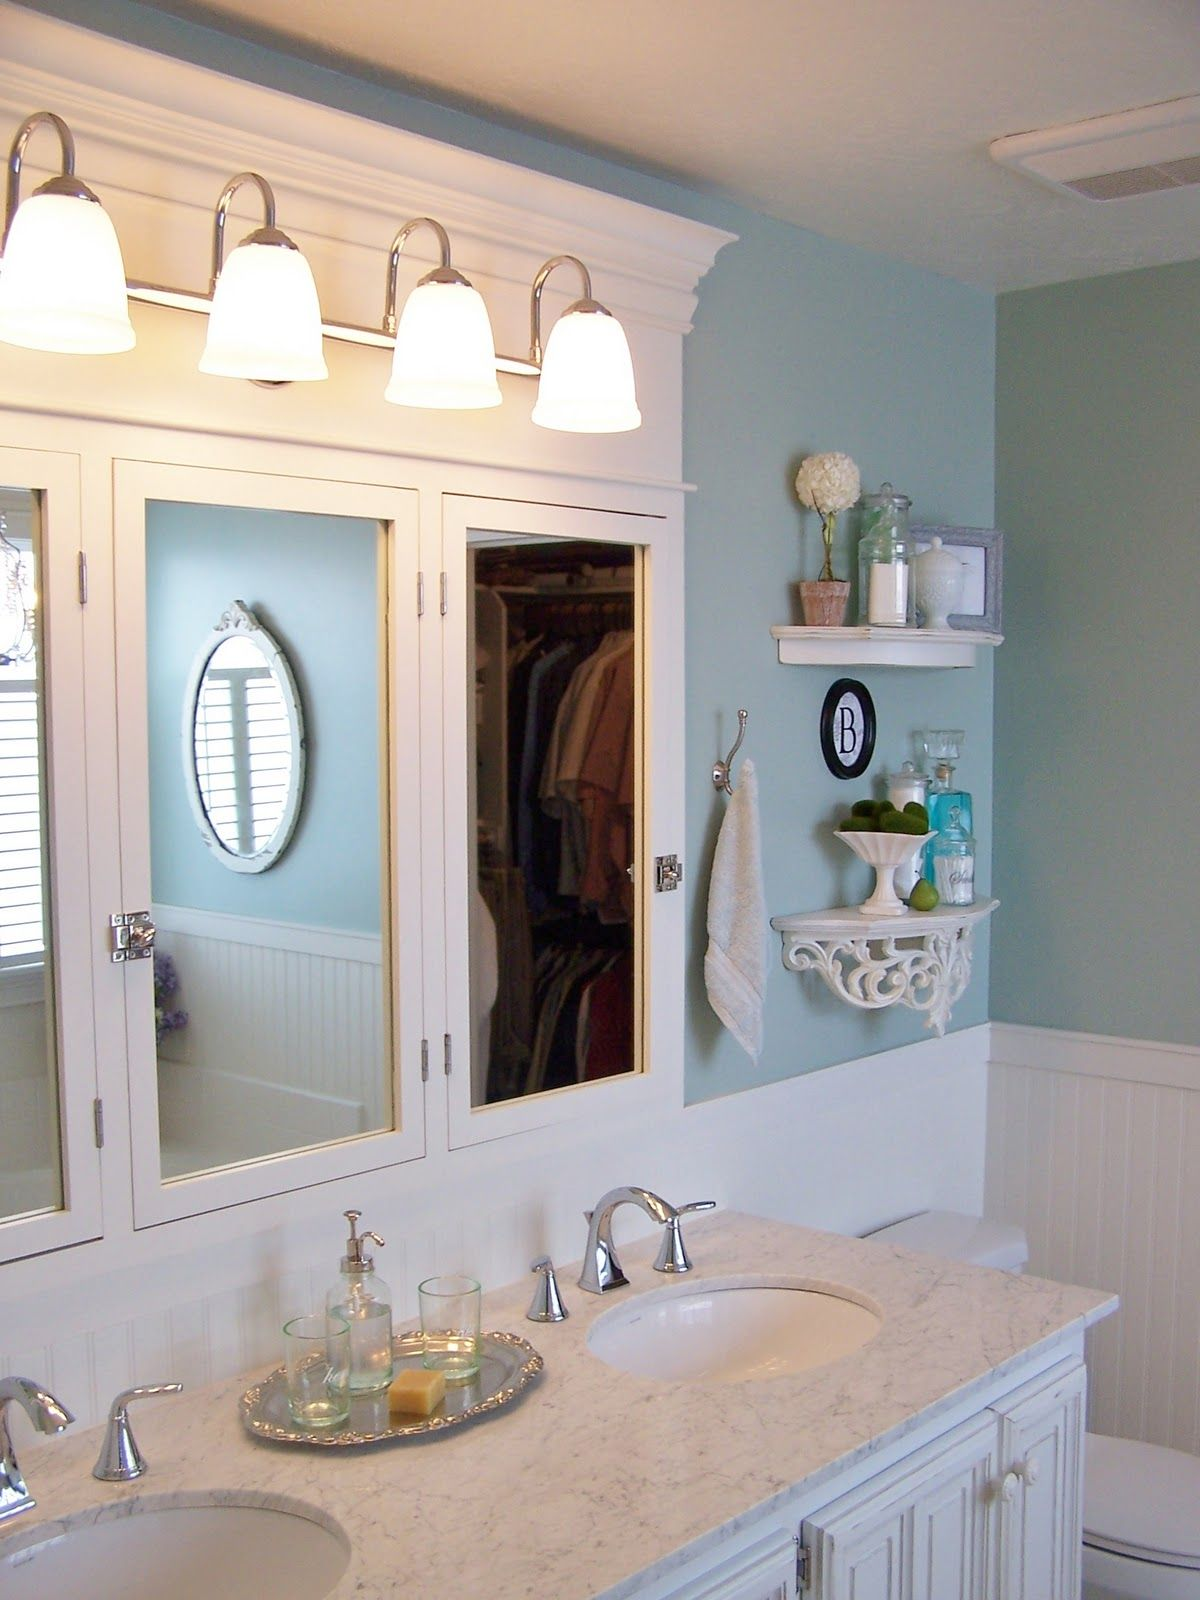 Complete diy master bathroom remodel medicine for Complete bathroom renovations